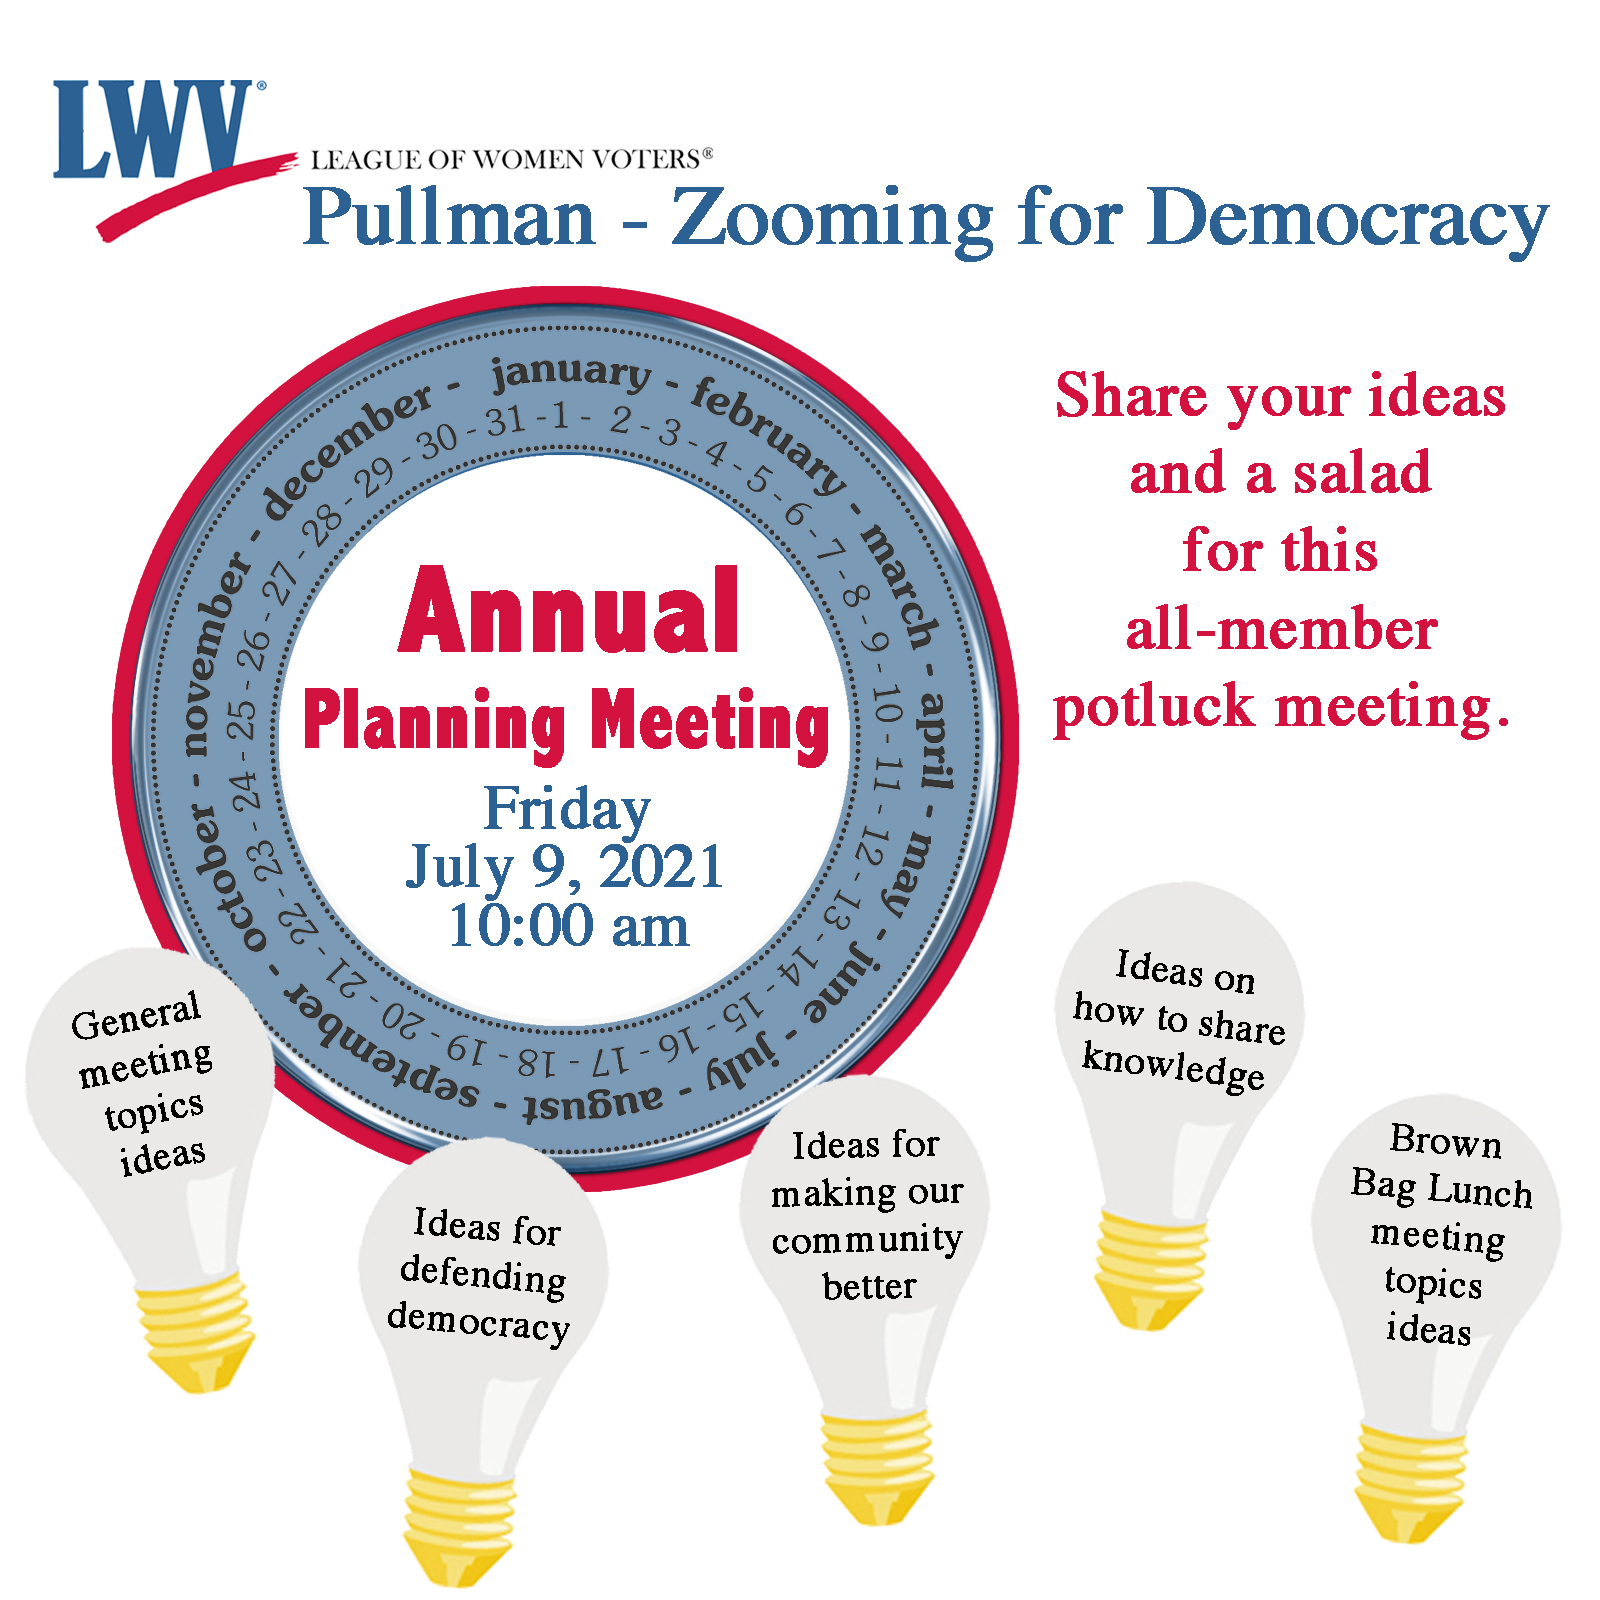 annual planning meeting image